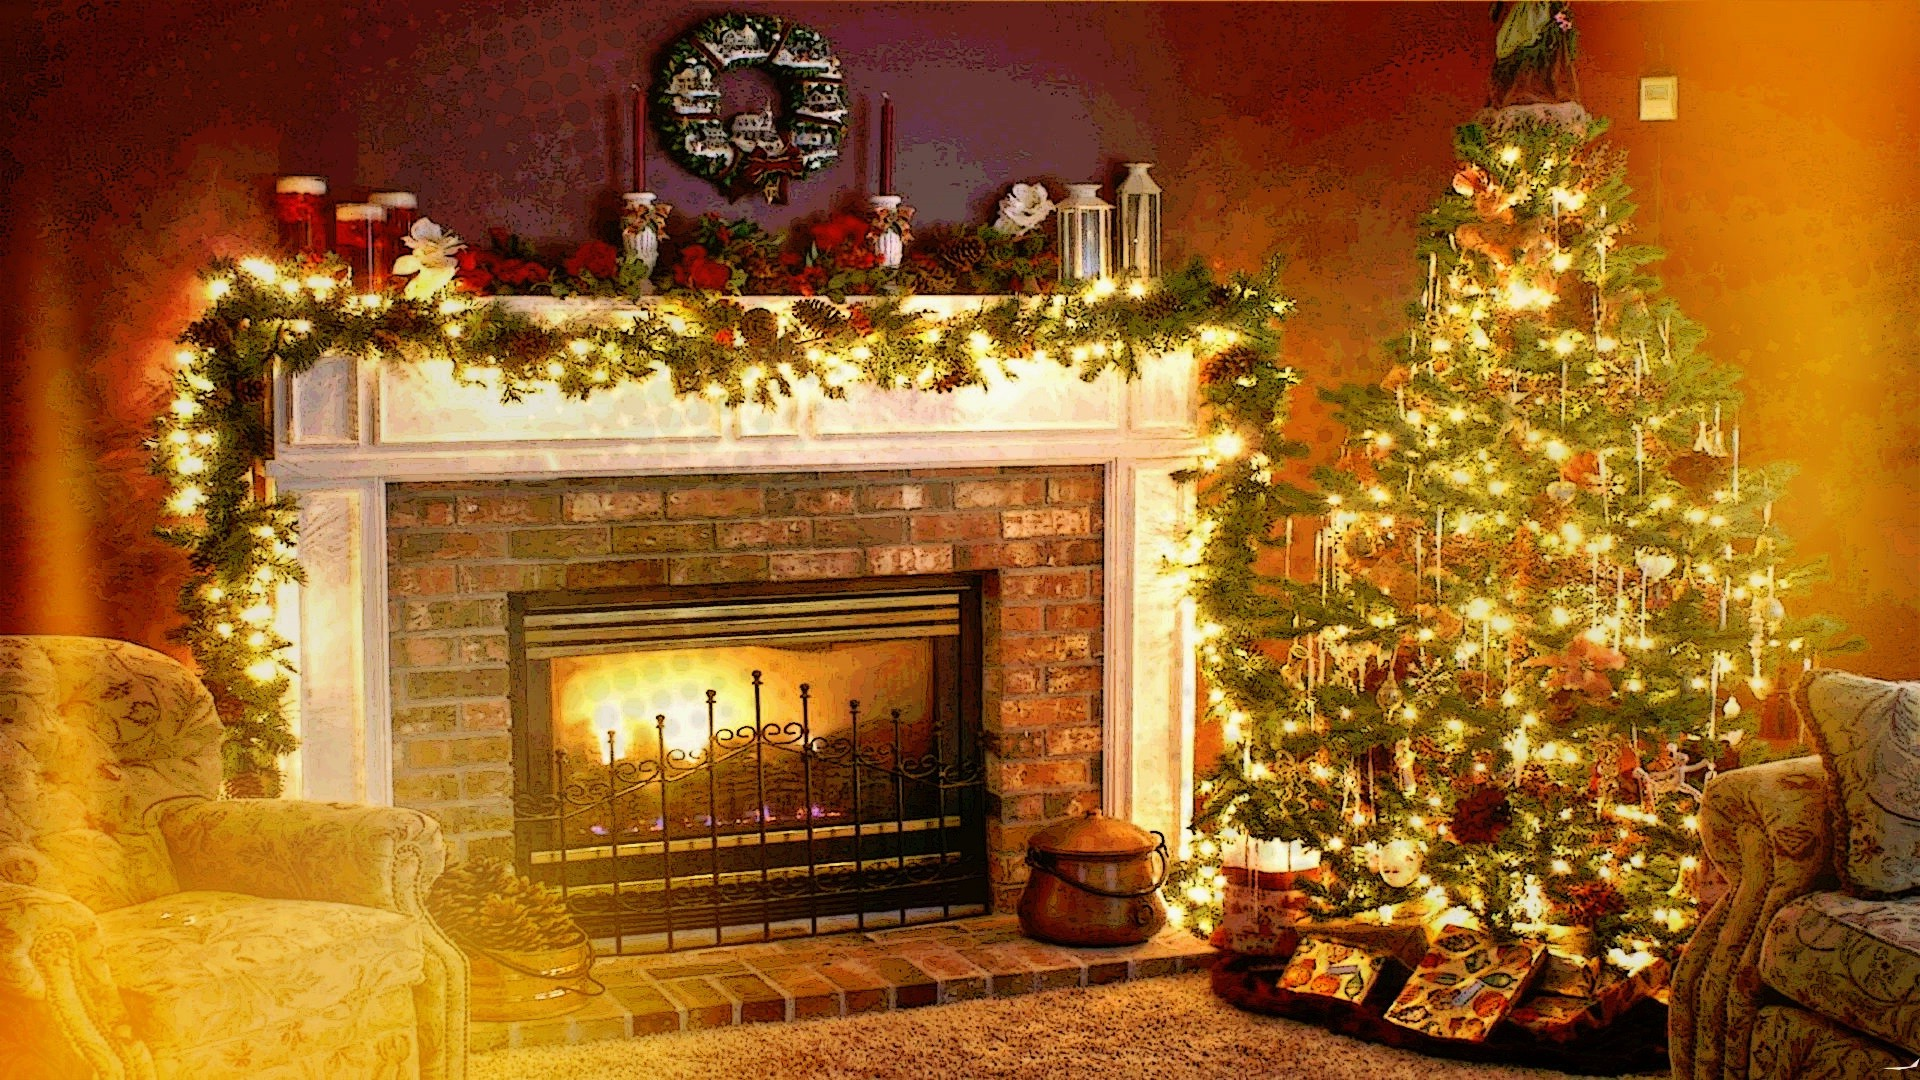 Christmas Fireplace Wallpaper Christmas Holiday Fireplace Interiors Welcome Home Wallpapers